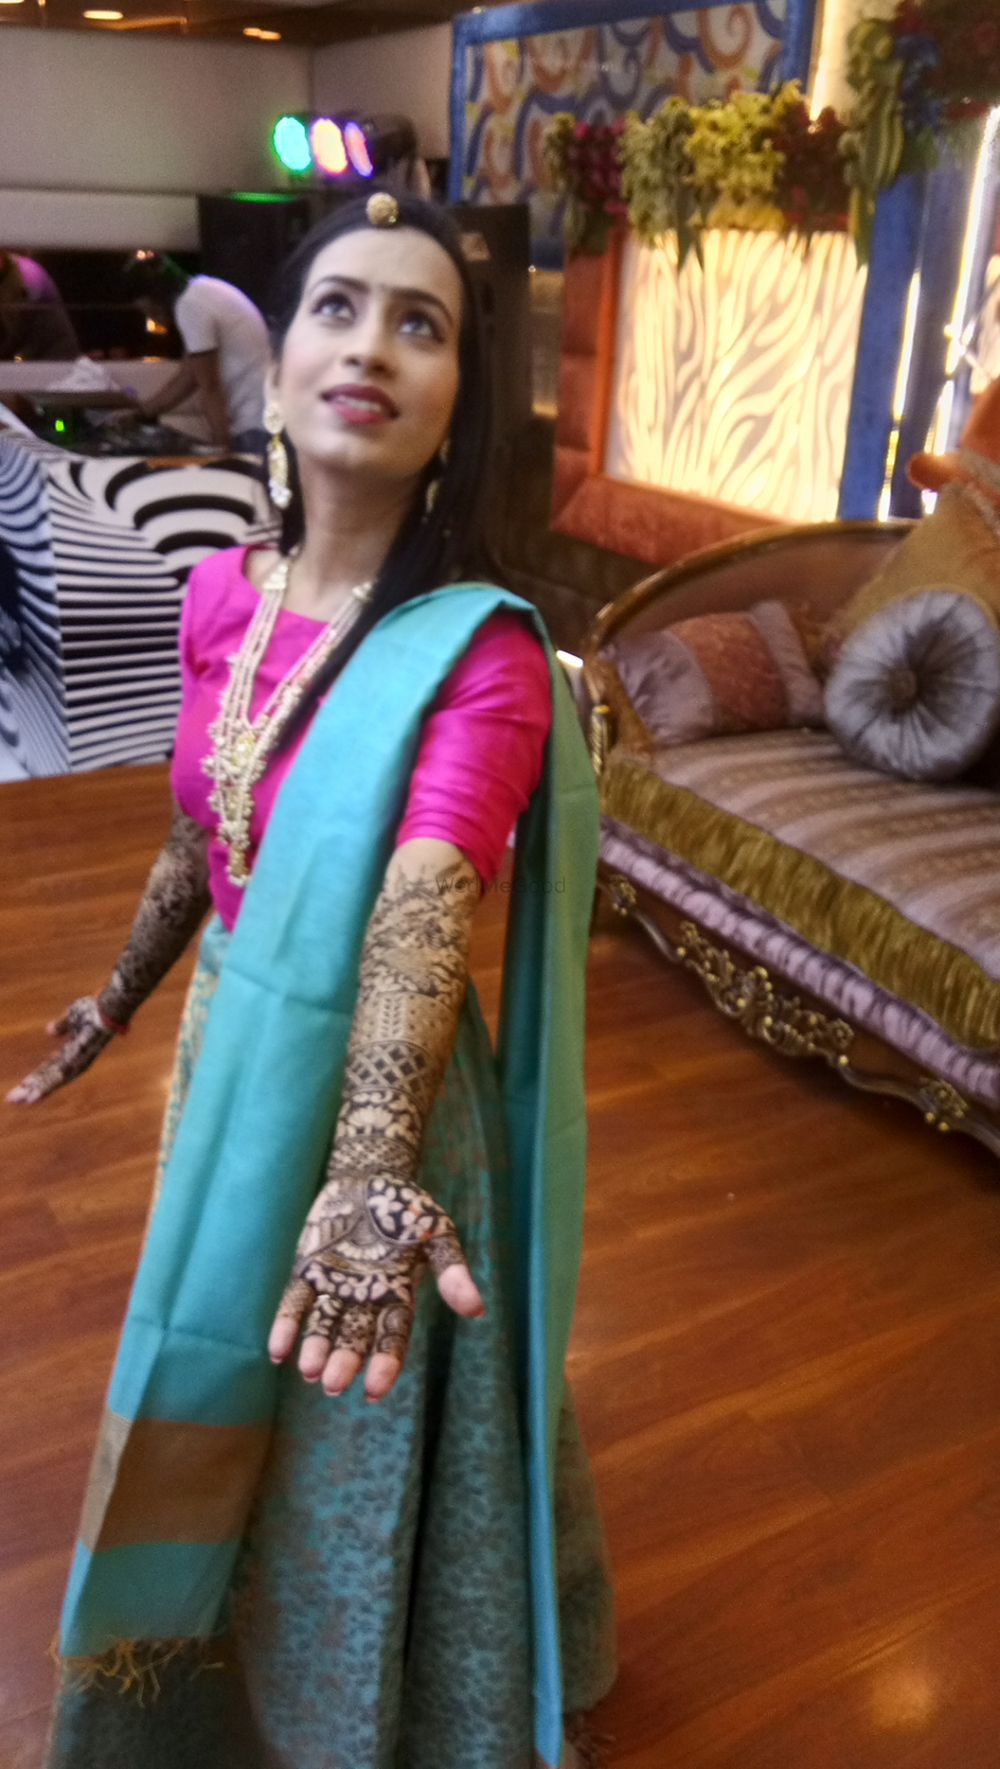 Photo From Priyanka bridal mehendi ceremony at Diamond crown on 5 th july - By Shalini Mehendi Artist